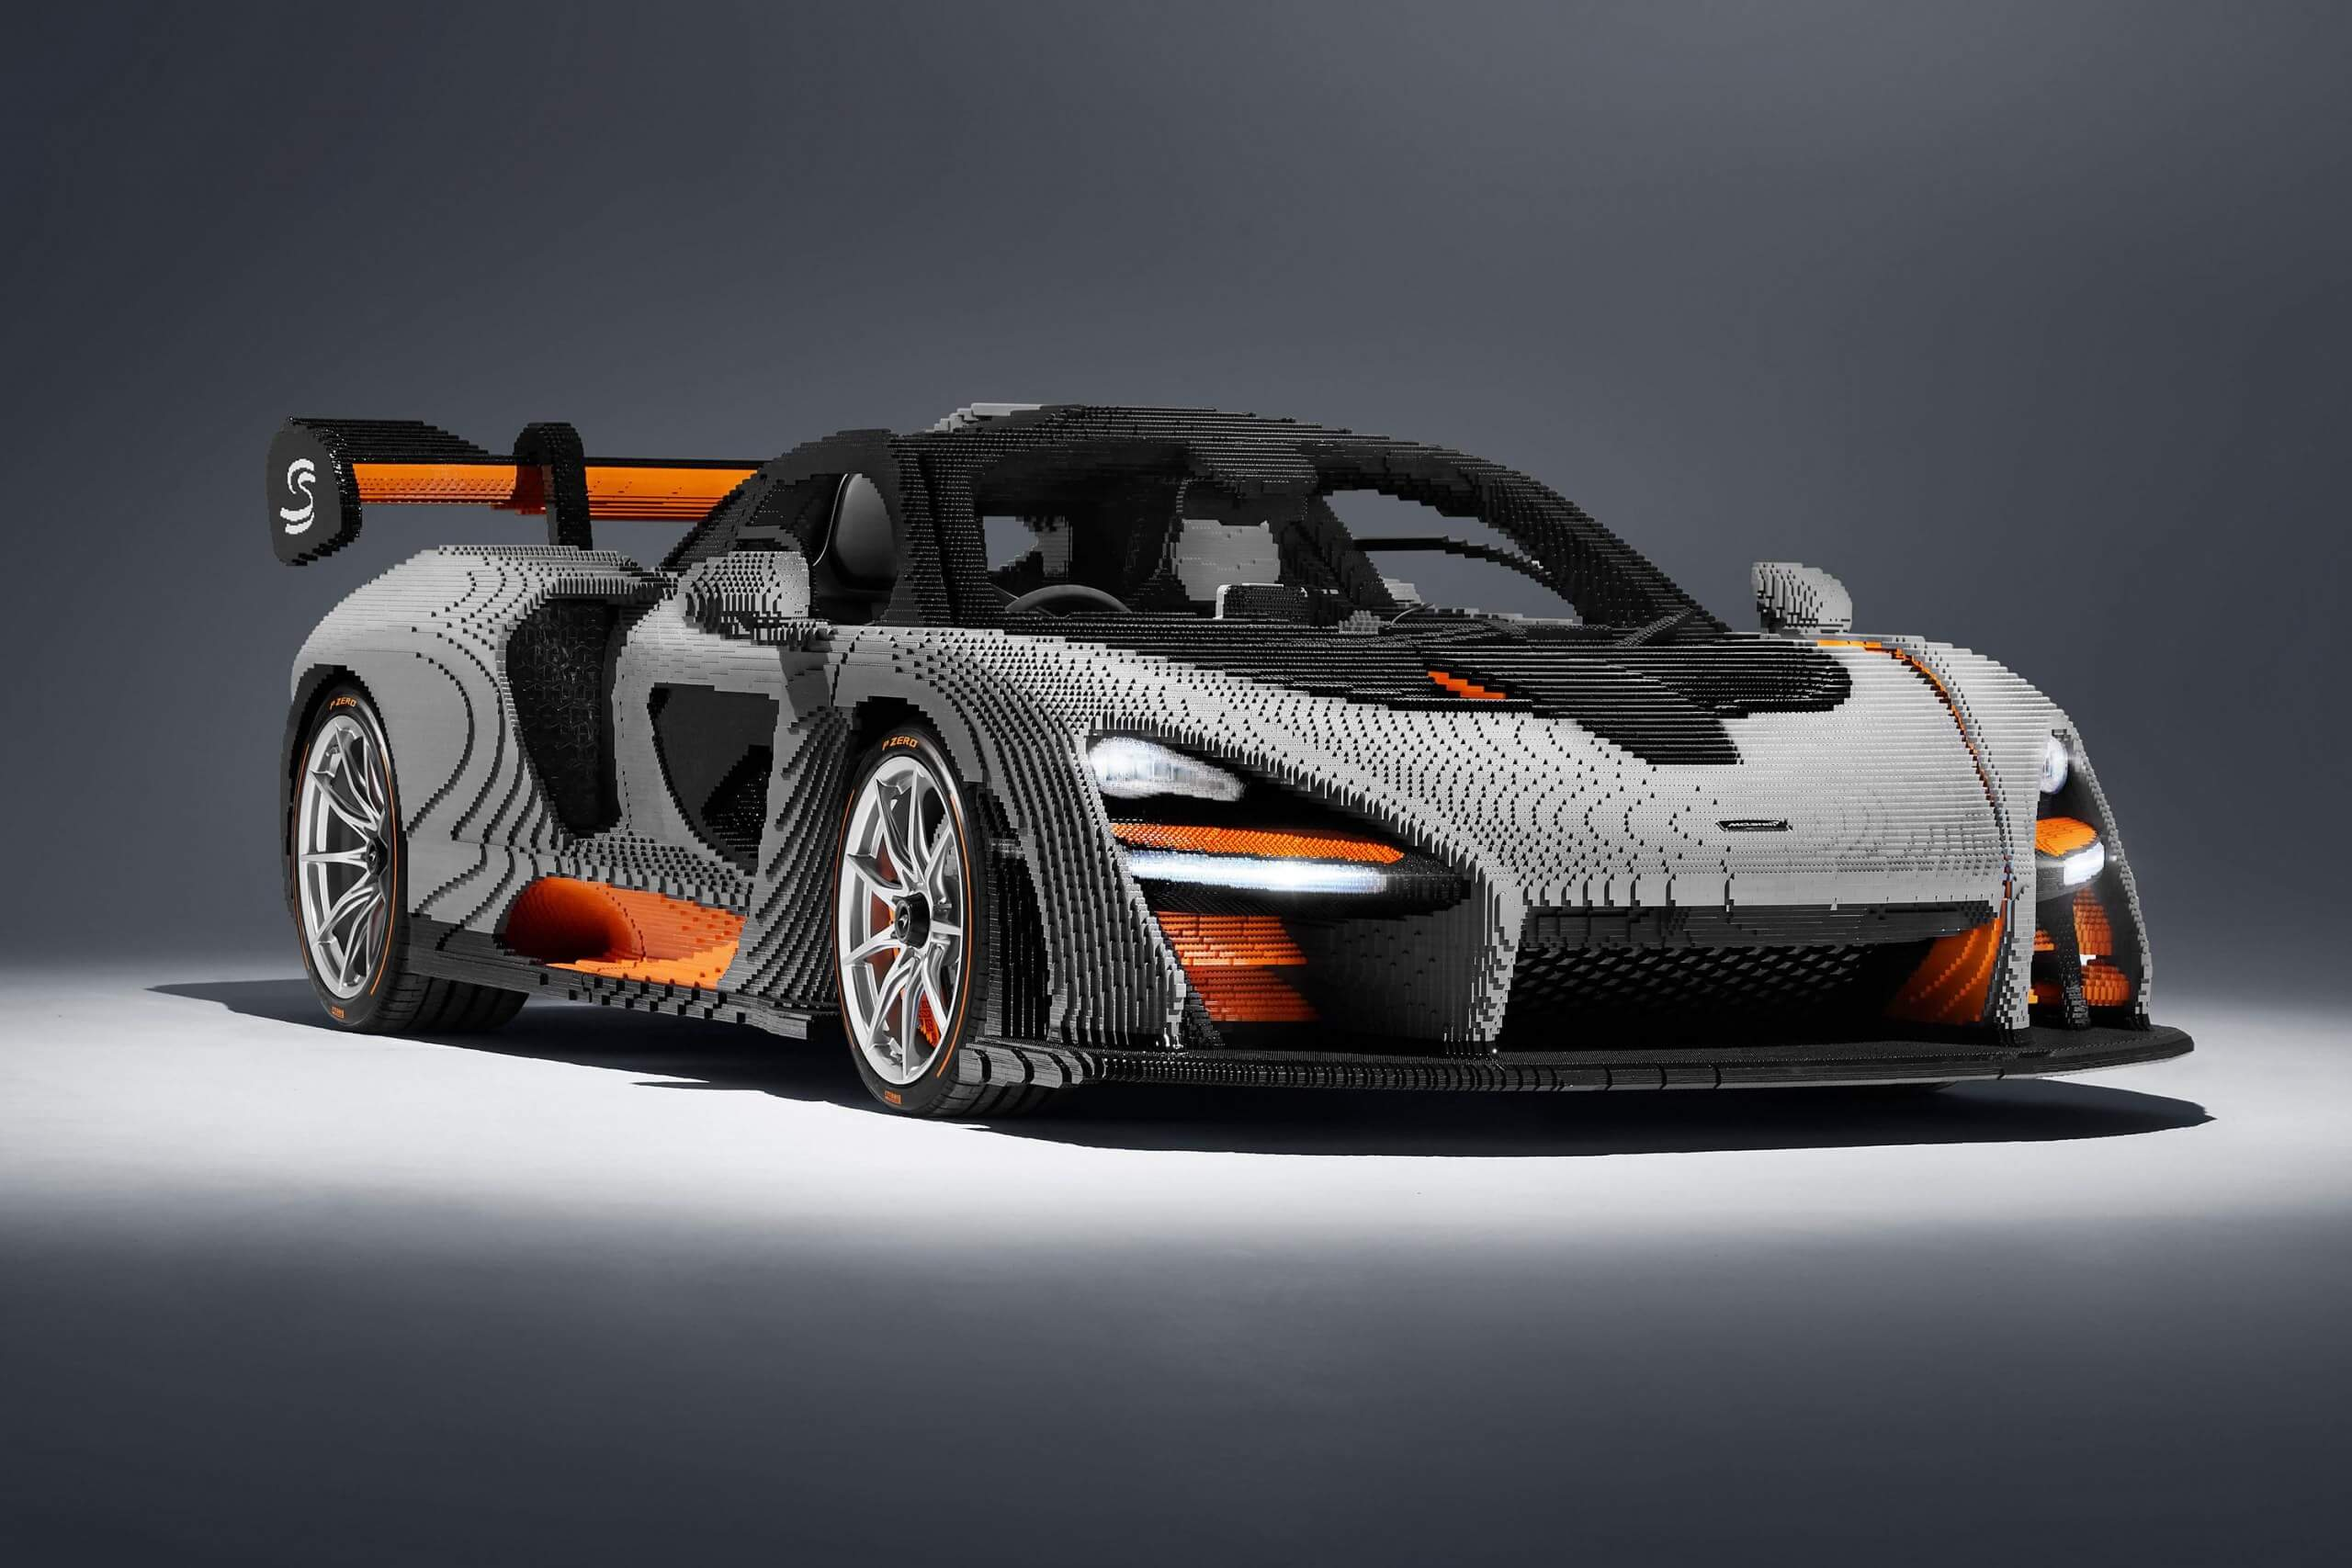 Lego's latest 1:1 replica is the McLaren Senna, which took four months and 467,854 bricks to build